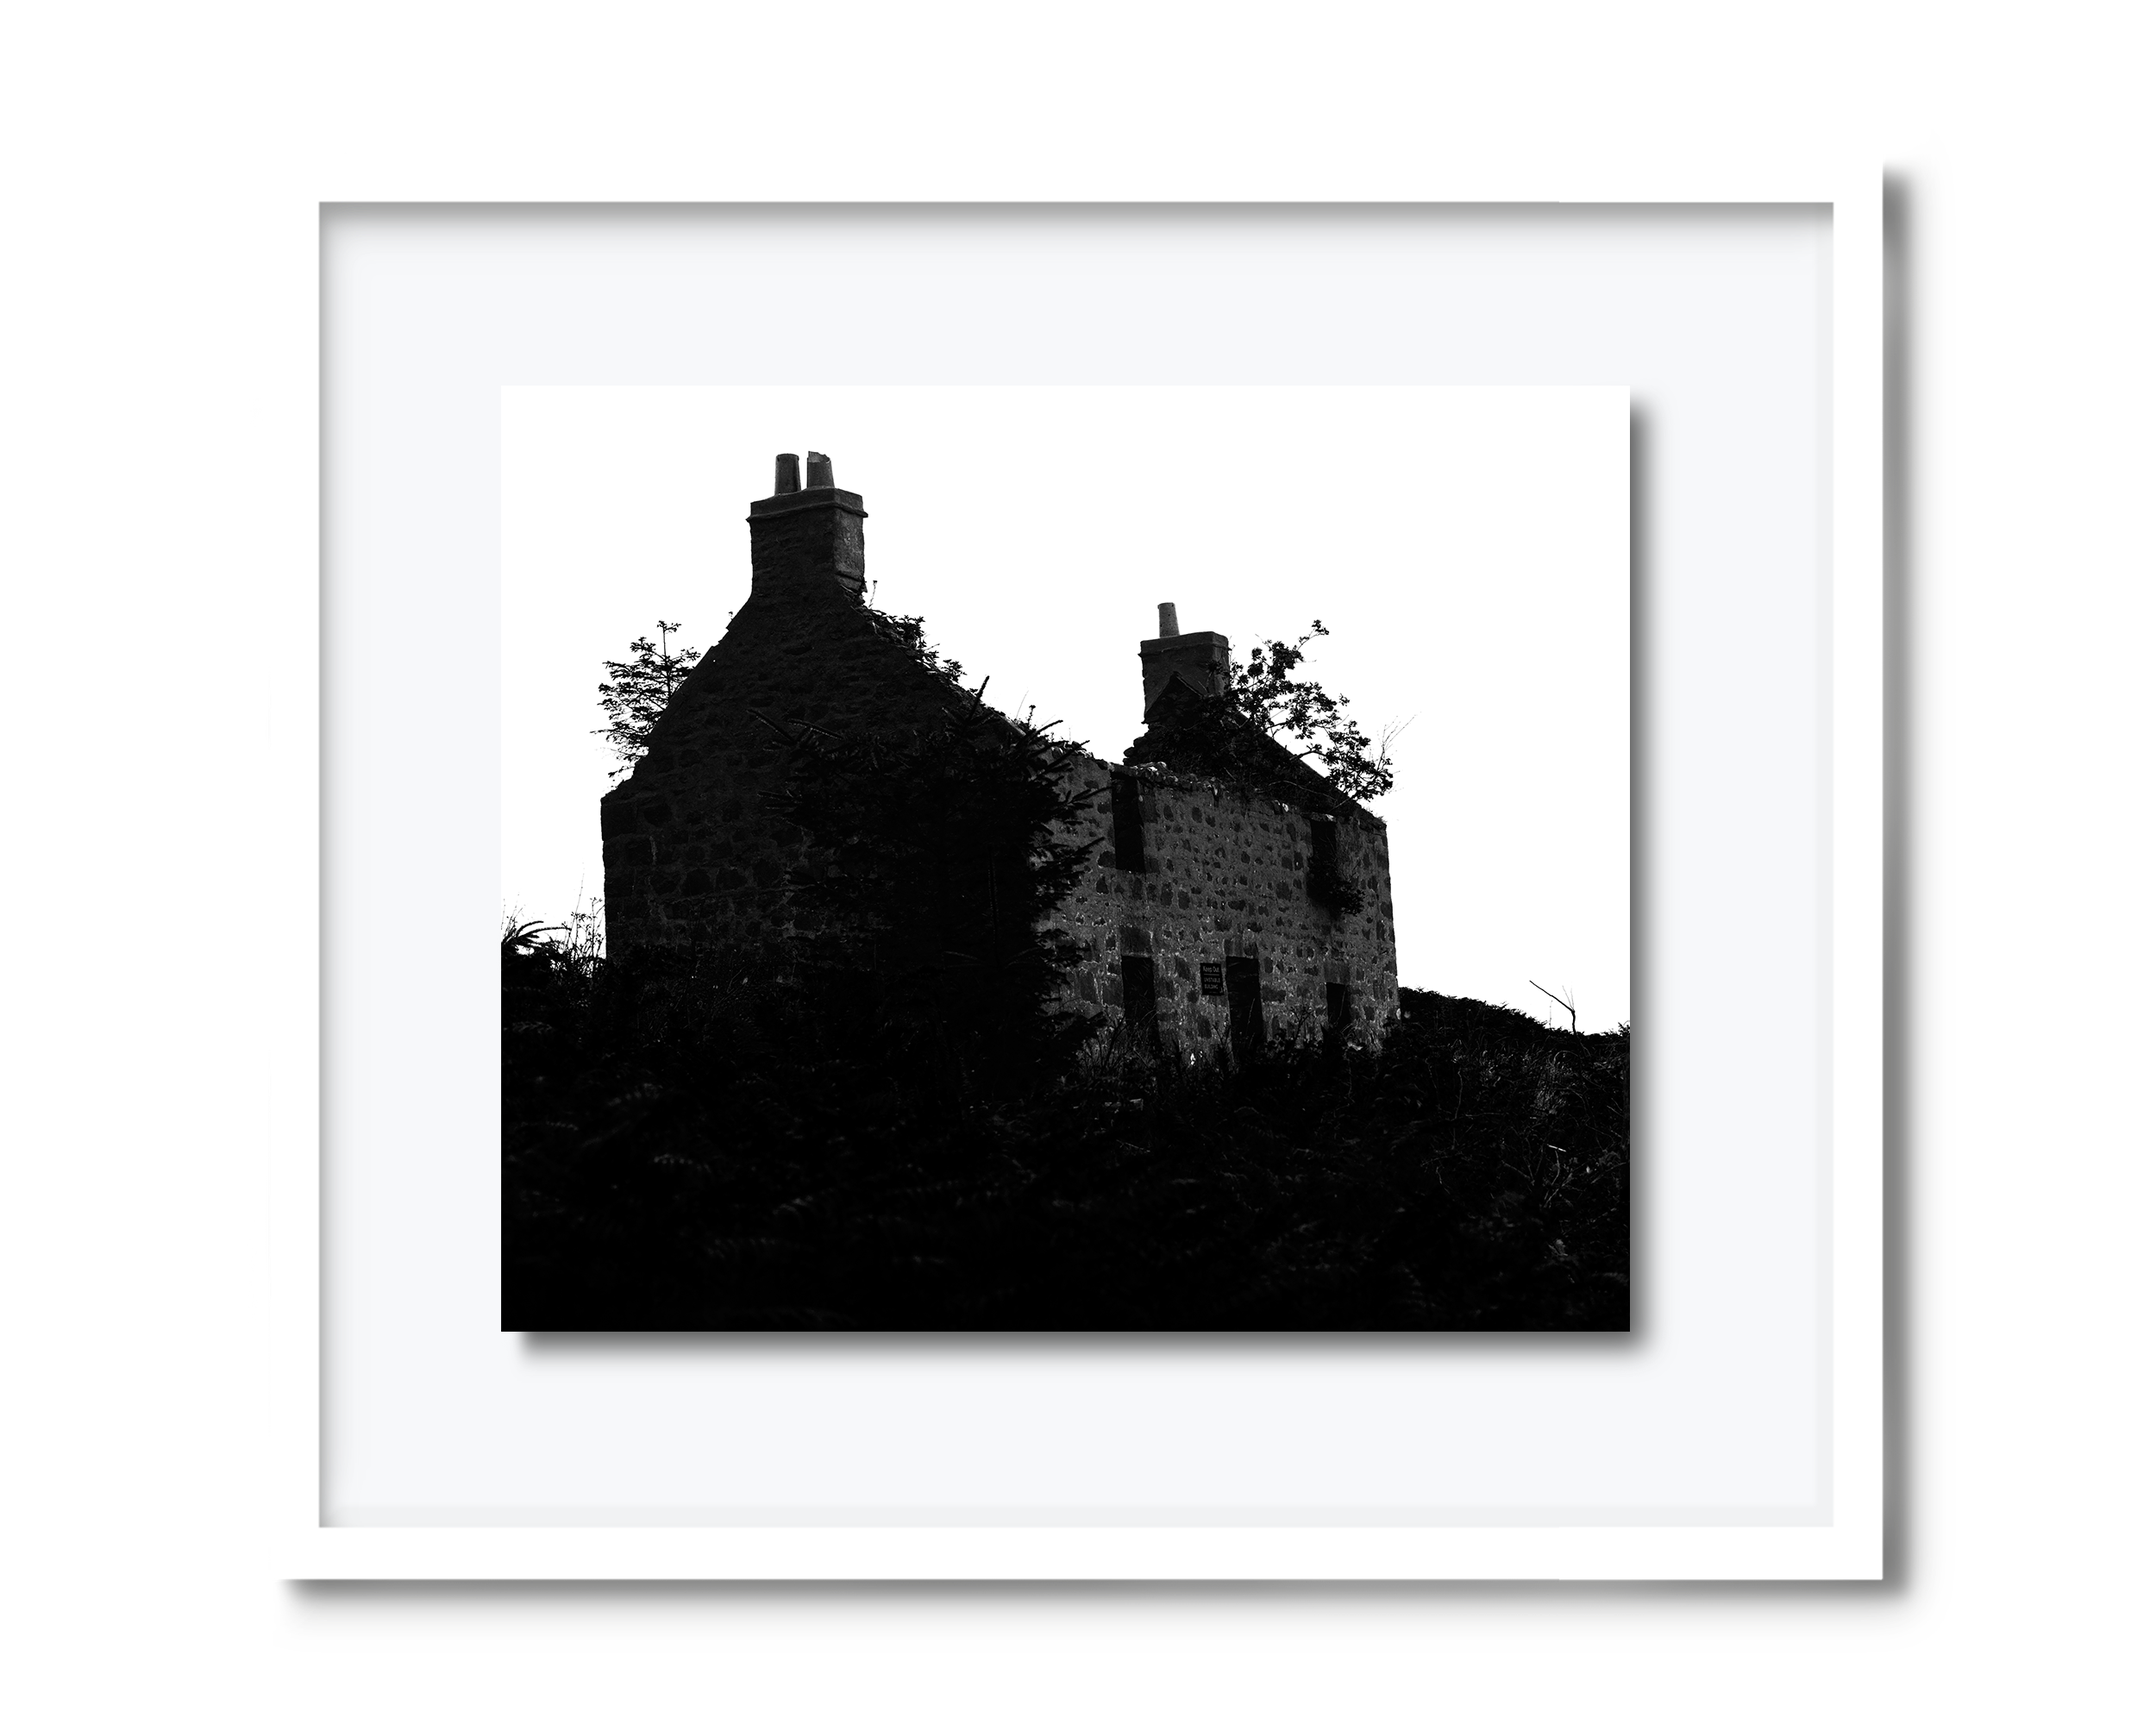 33.david-pearce-derelict-house.png